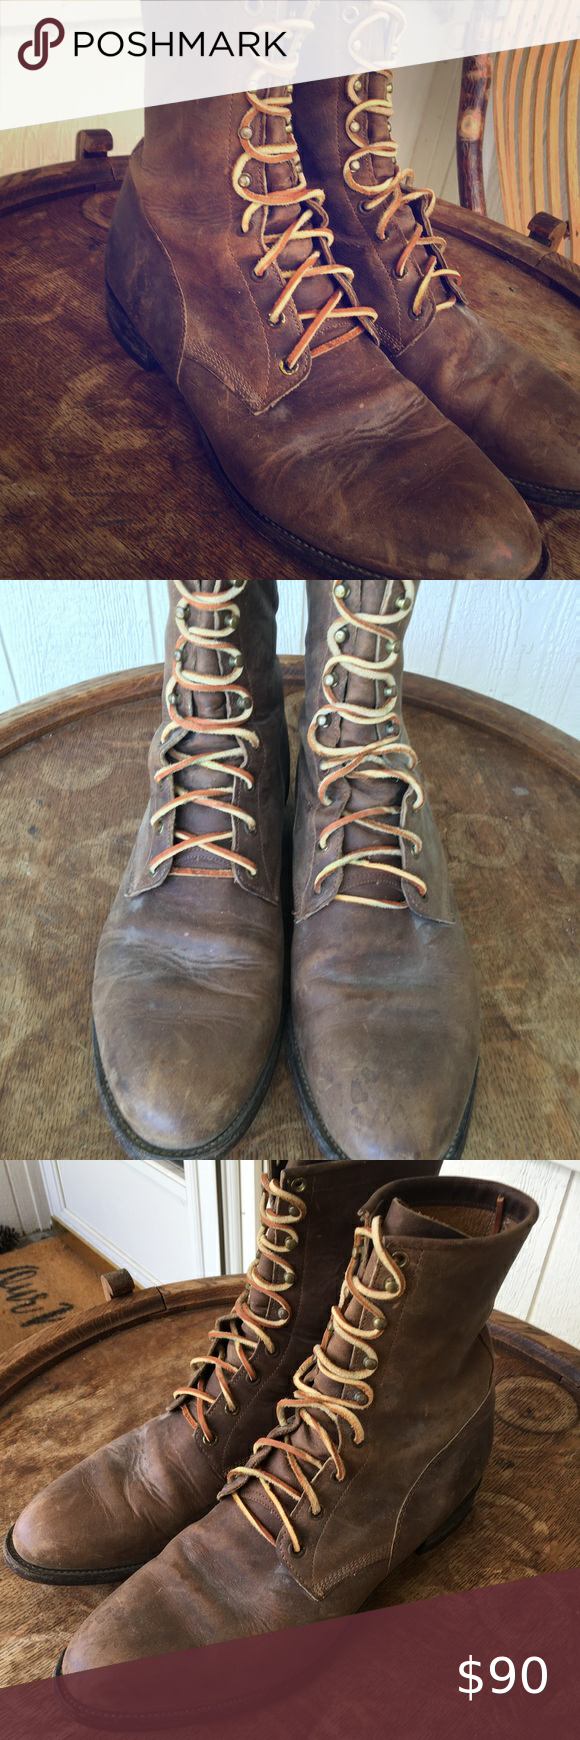 Justin Lace Up Boots size 12 D in 2020